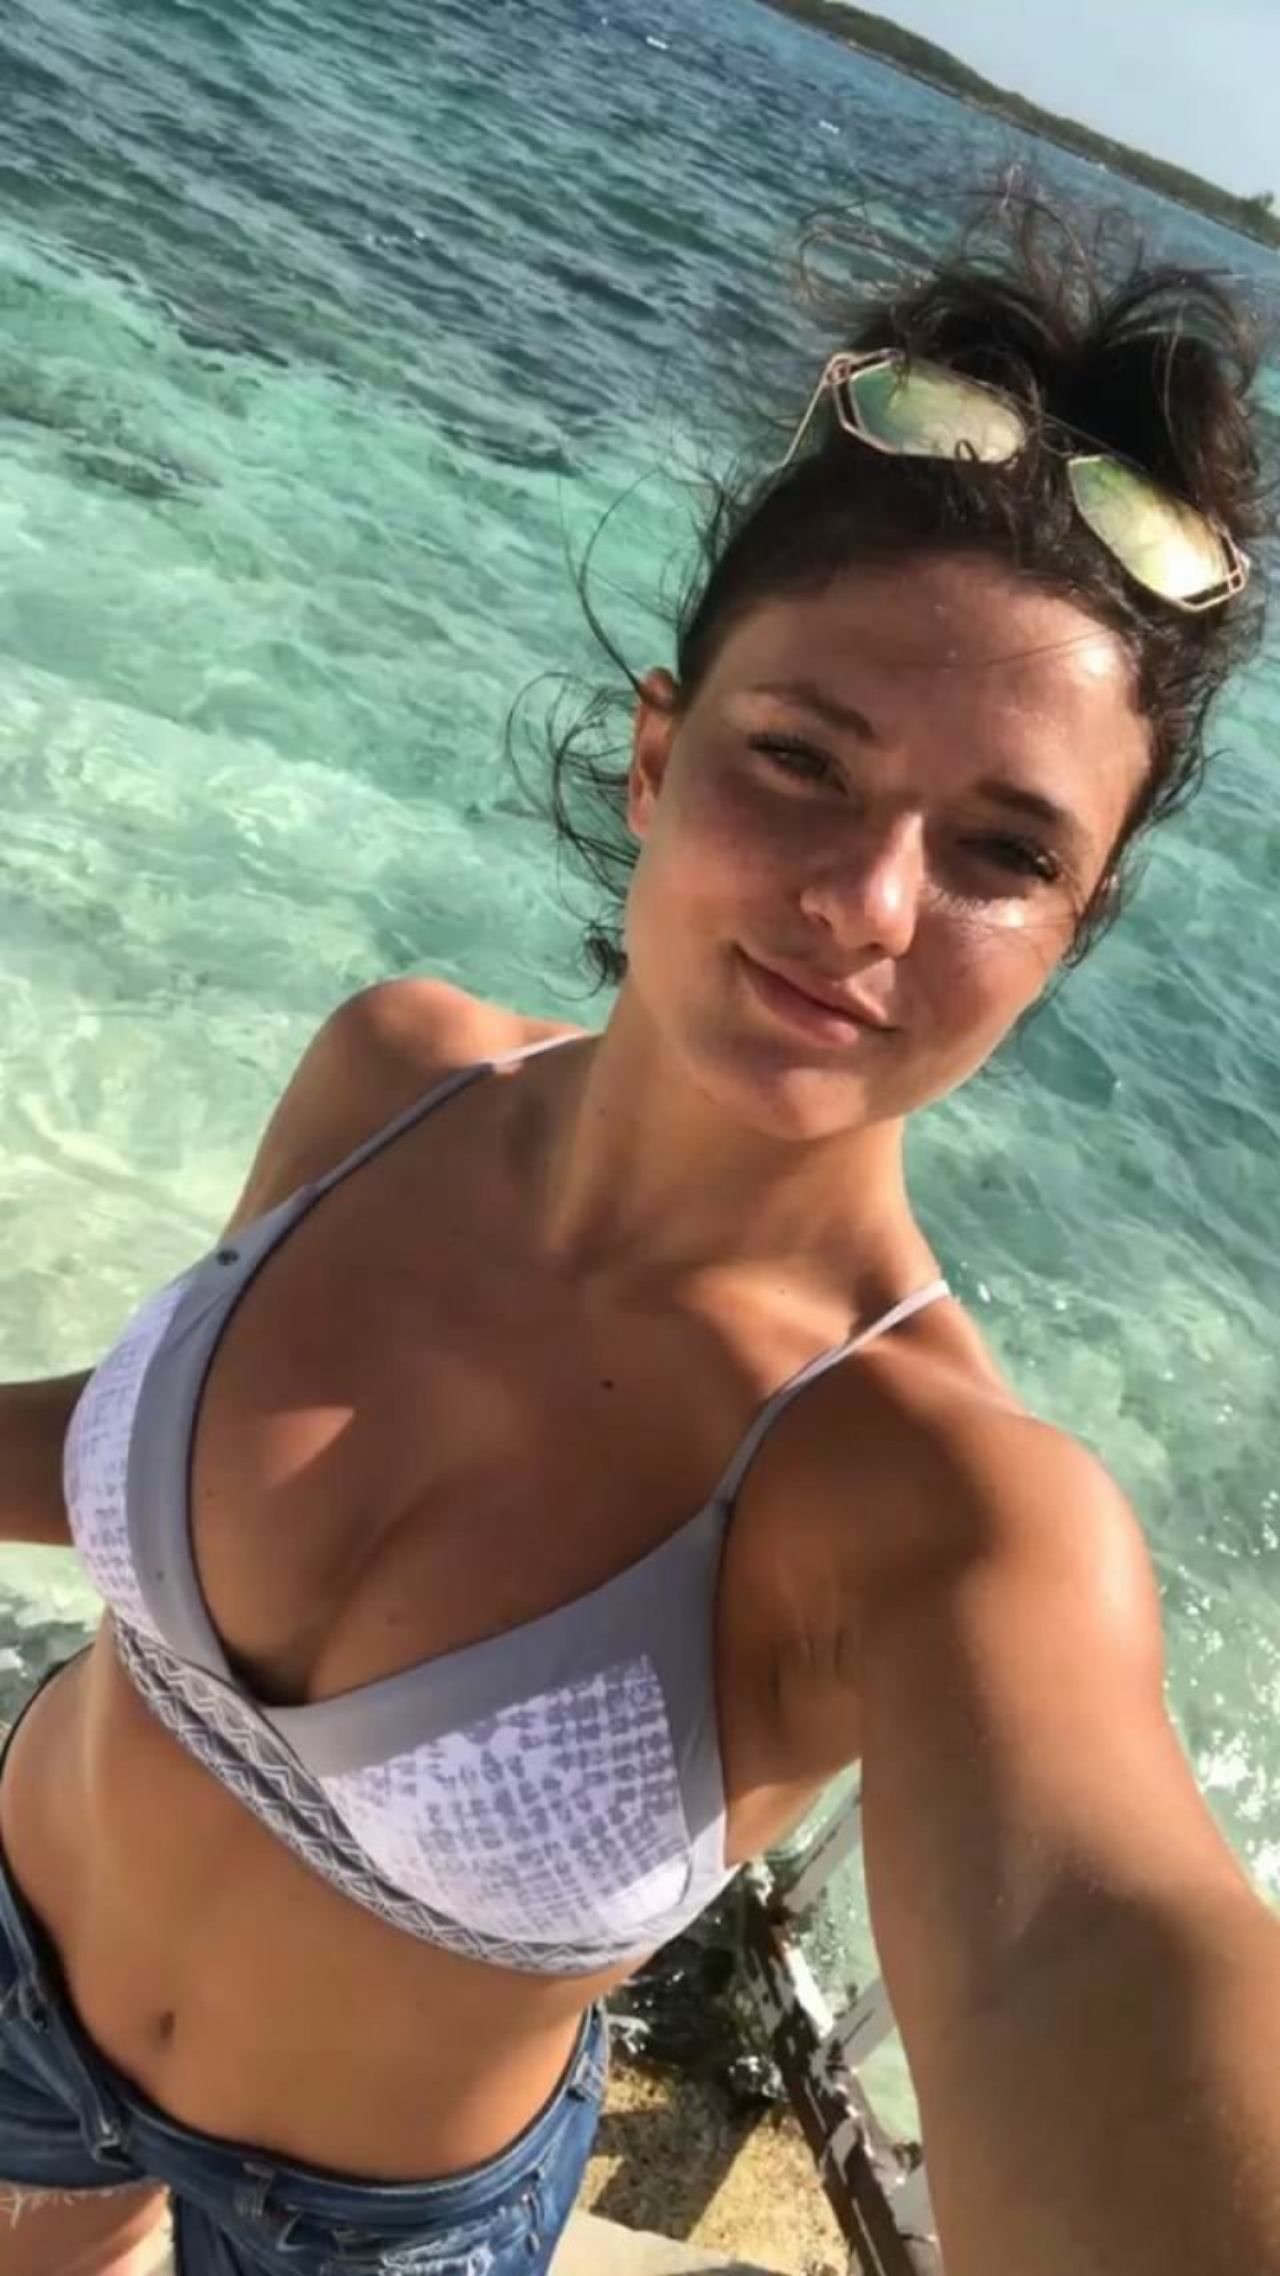 Jade Chynoweth - Social Media Images and Videos, October 2017